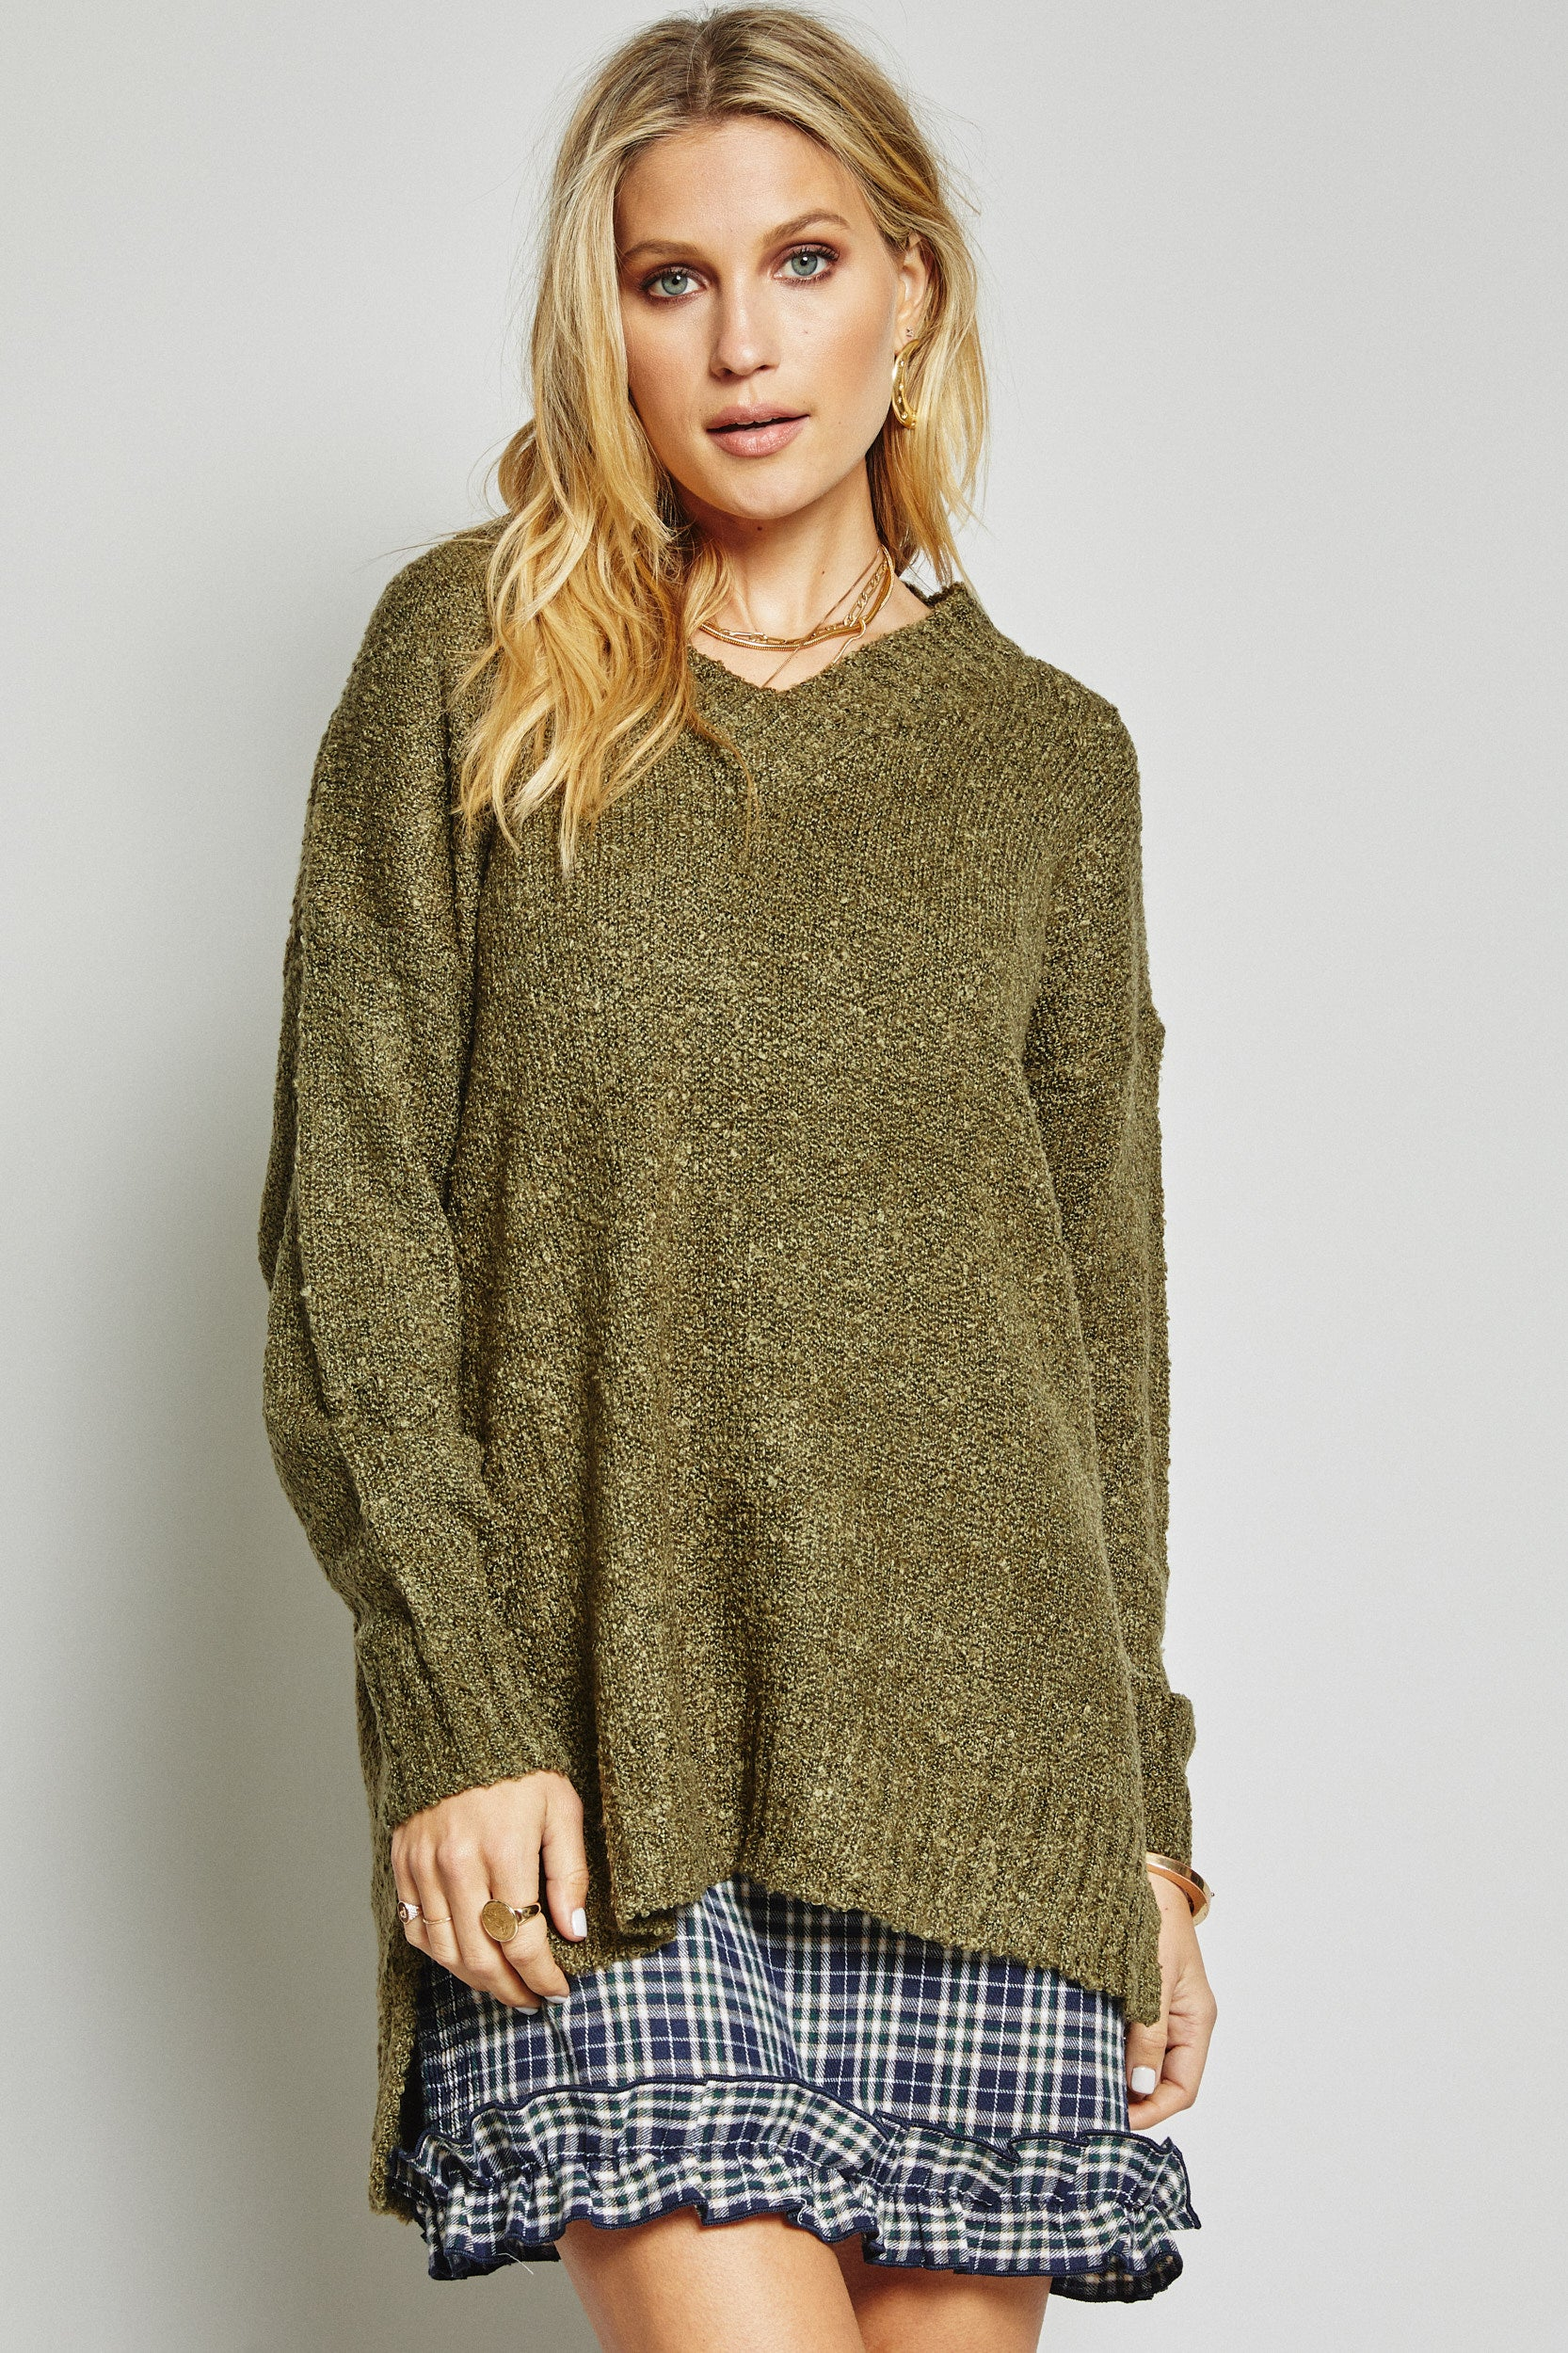 Desert Tribe Sweater